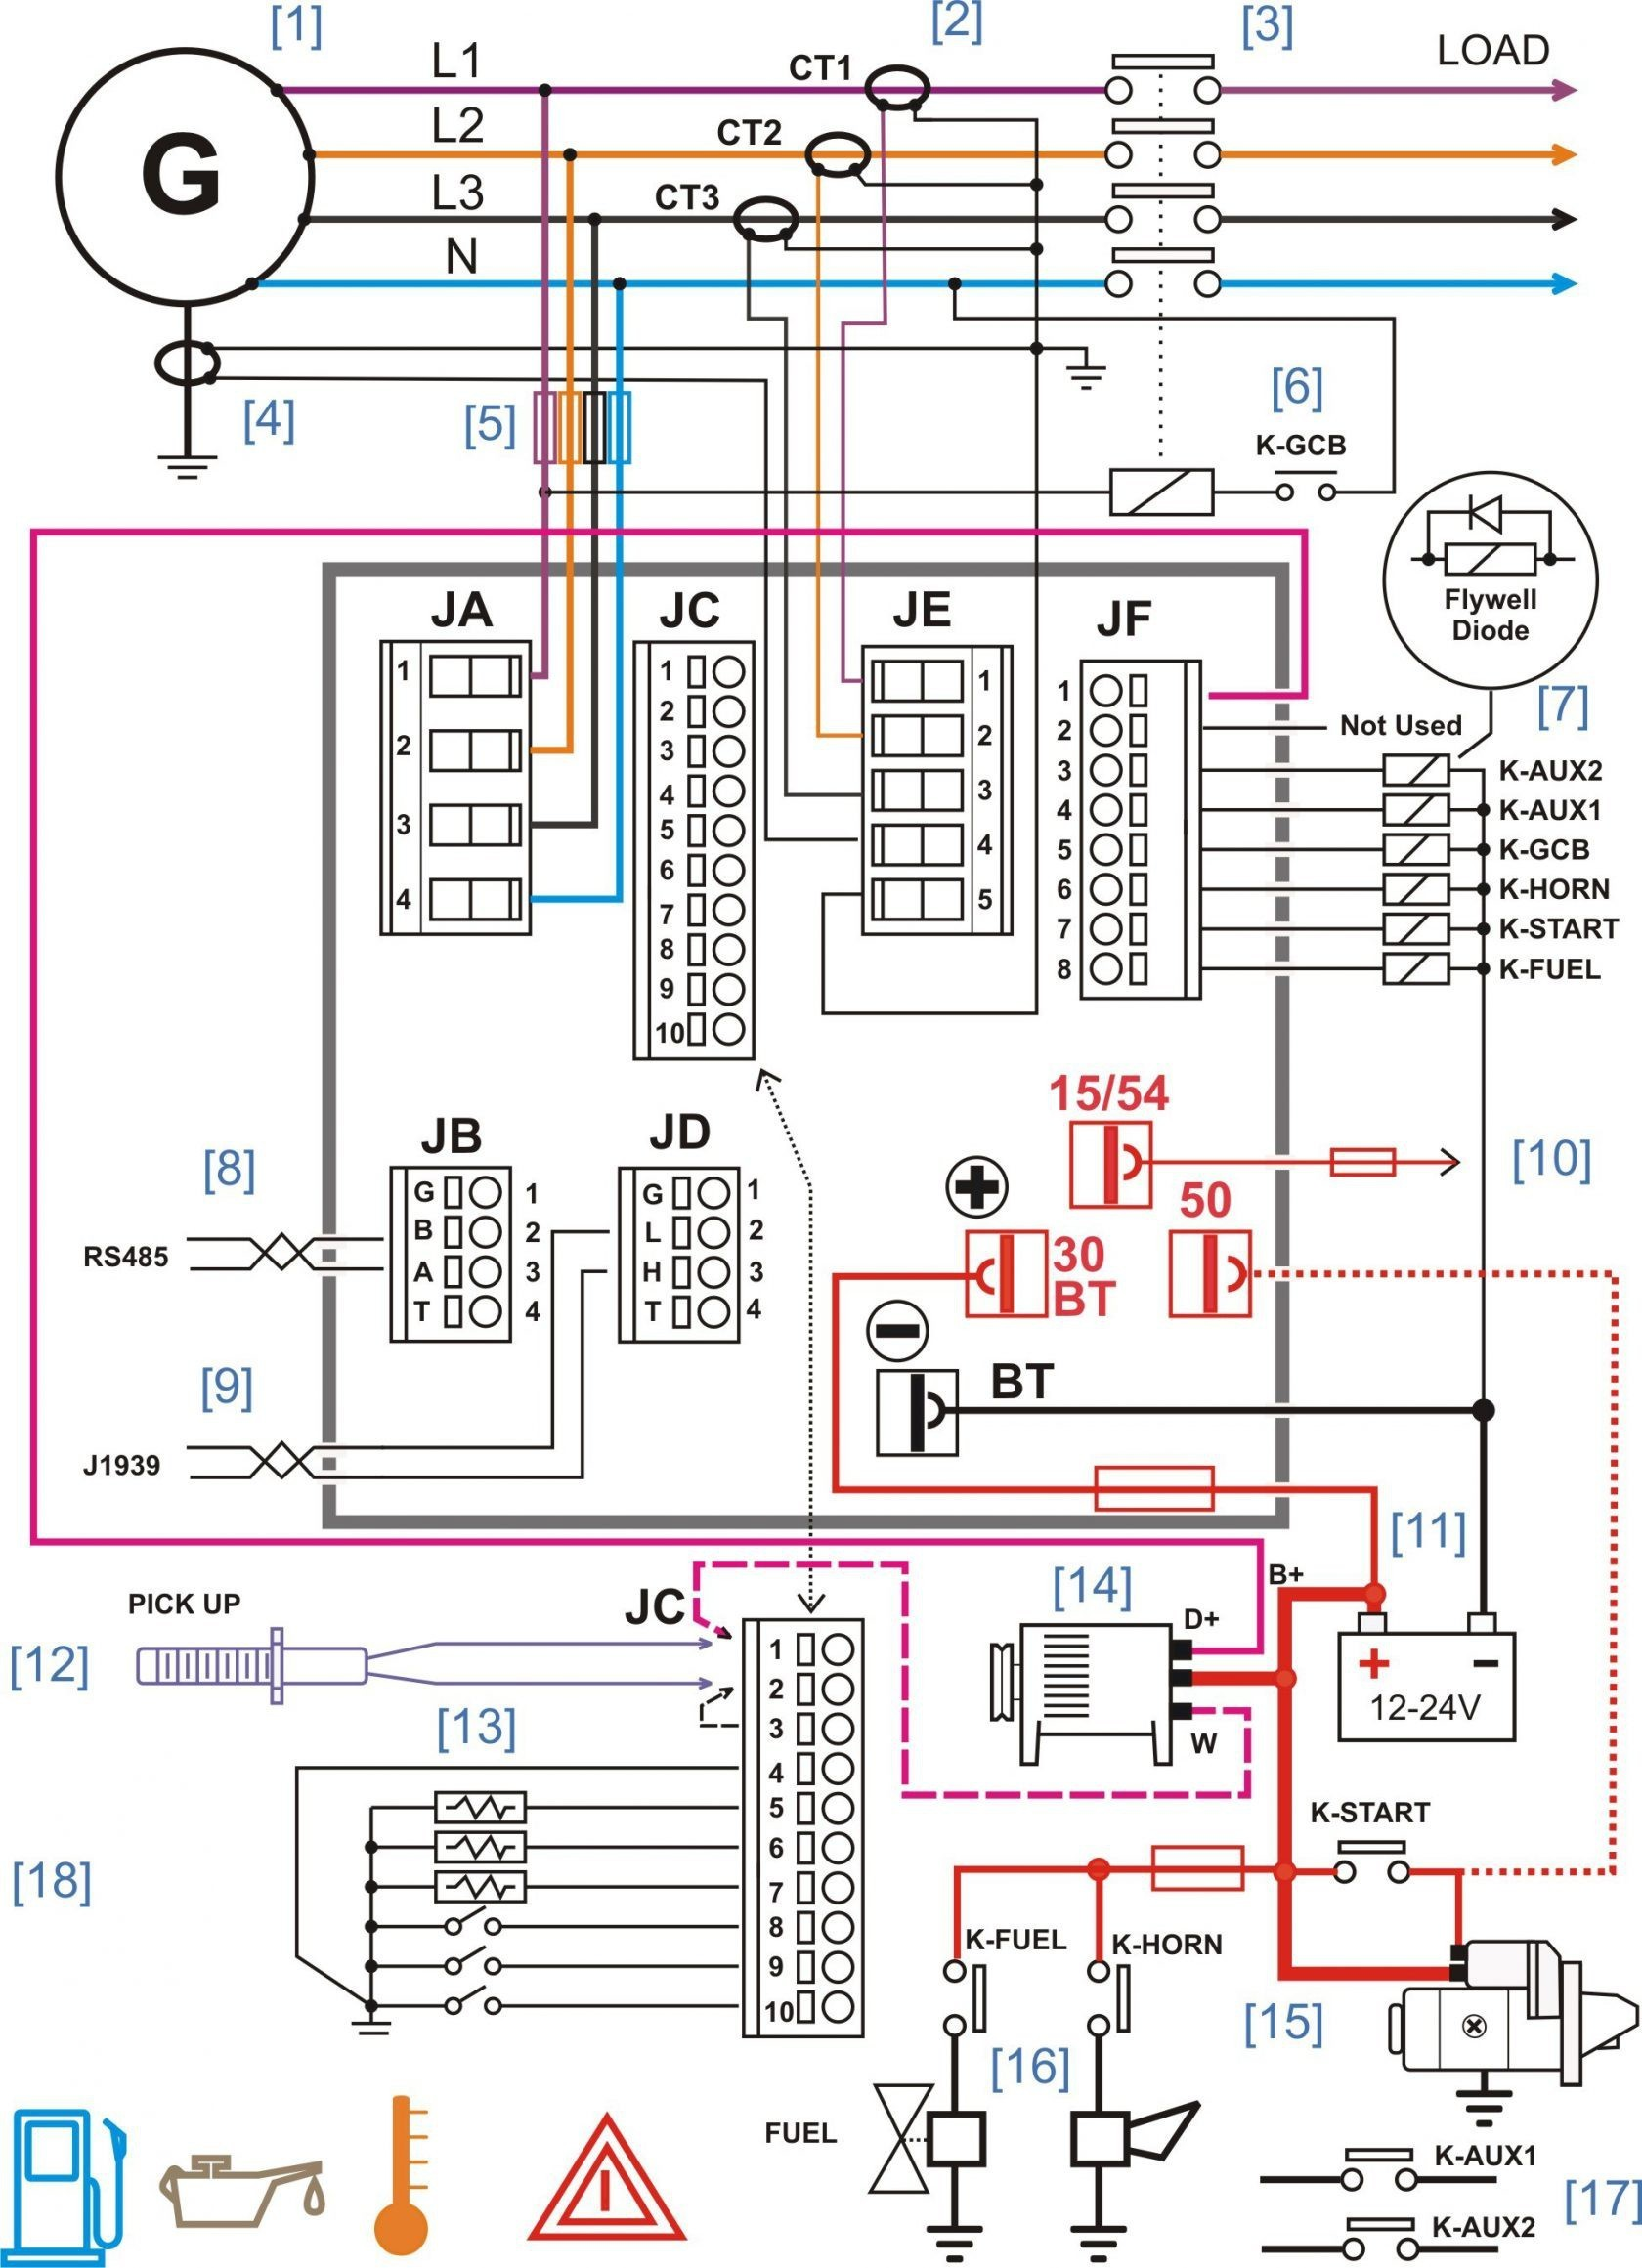 Viper 560xv Wiring Diagram Electrical Starter Xk09 Block And Schematic Diagrams U2022 Remote